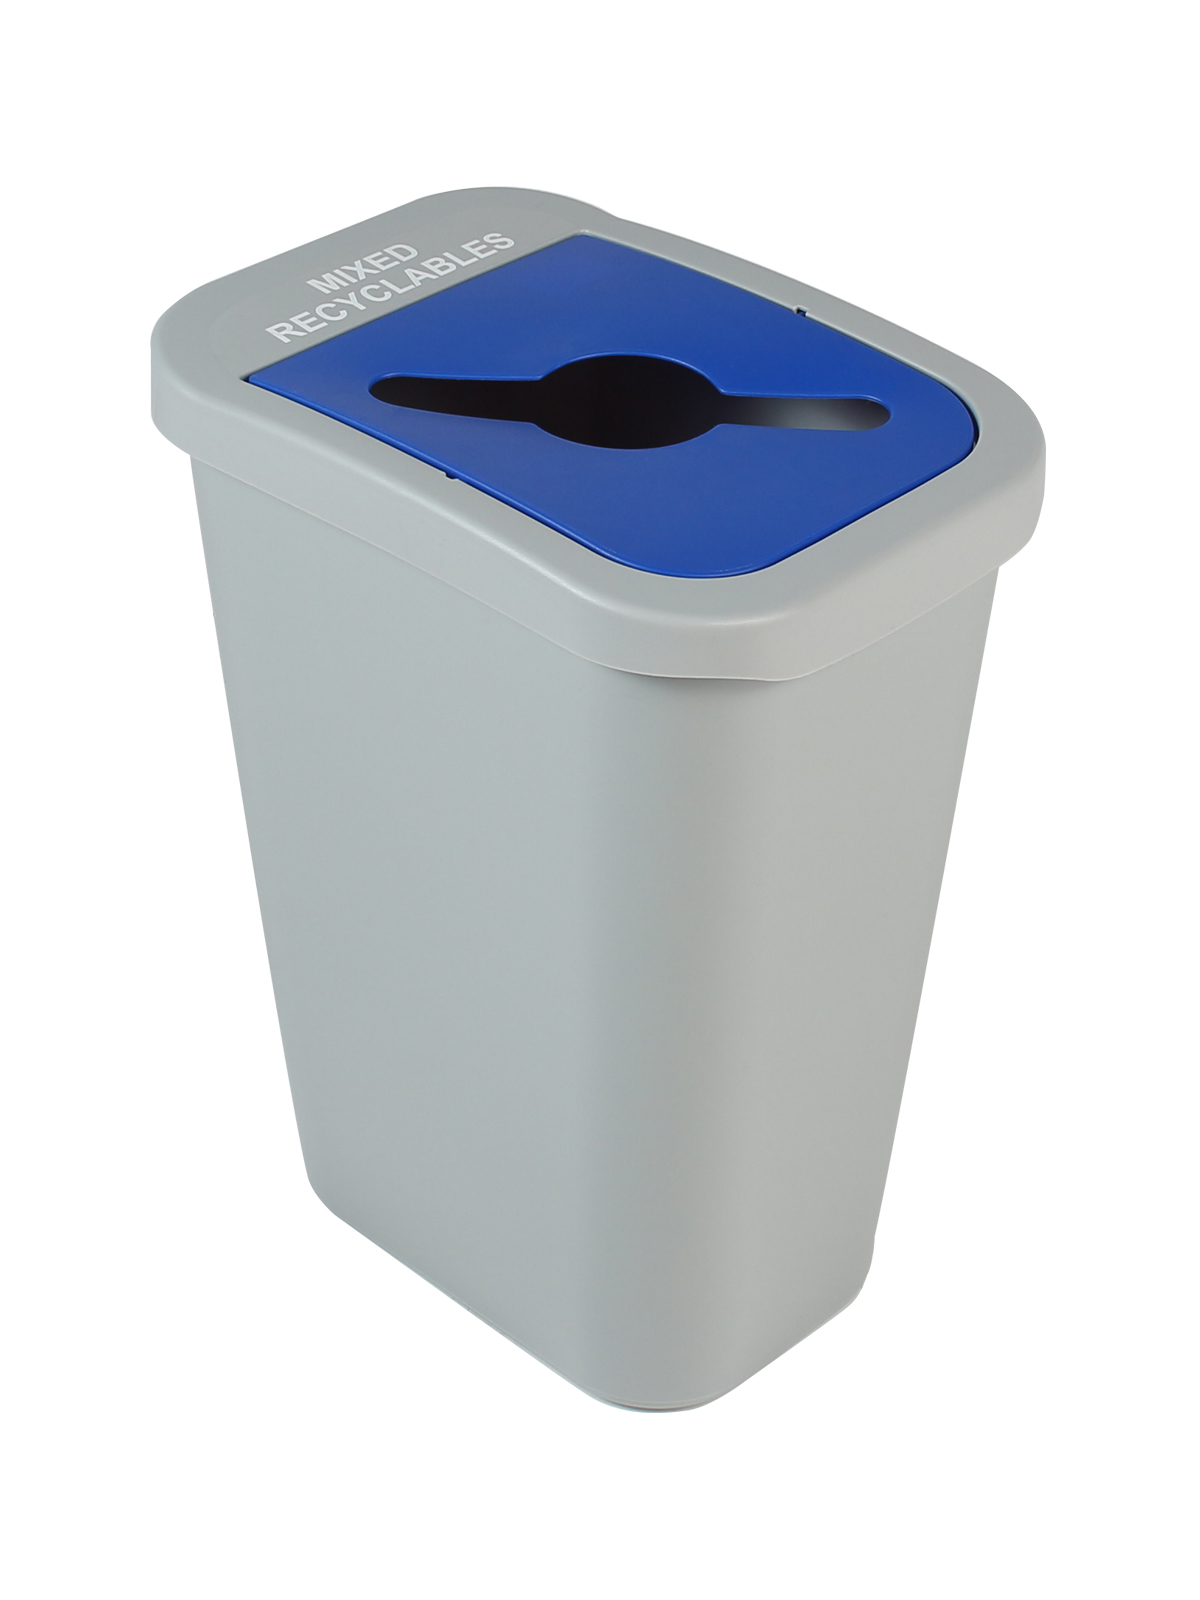 BILLI BOX - Single - 10 G - Mixed Recyclables - Mixed - Grey-Blue